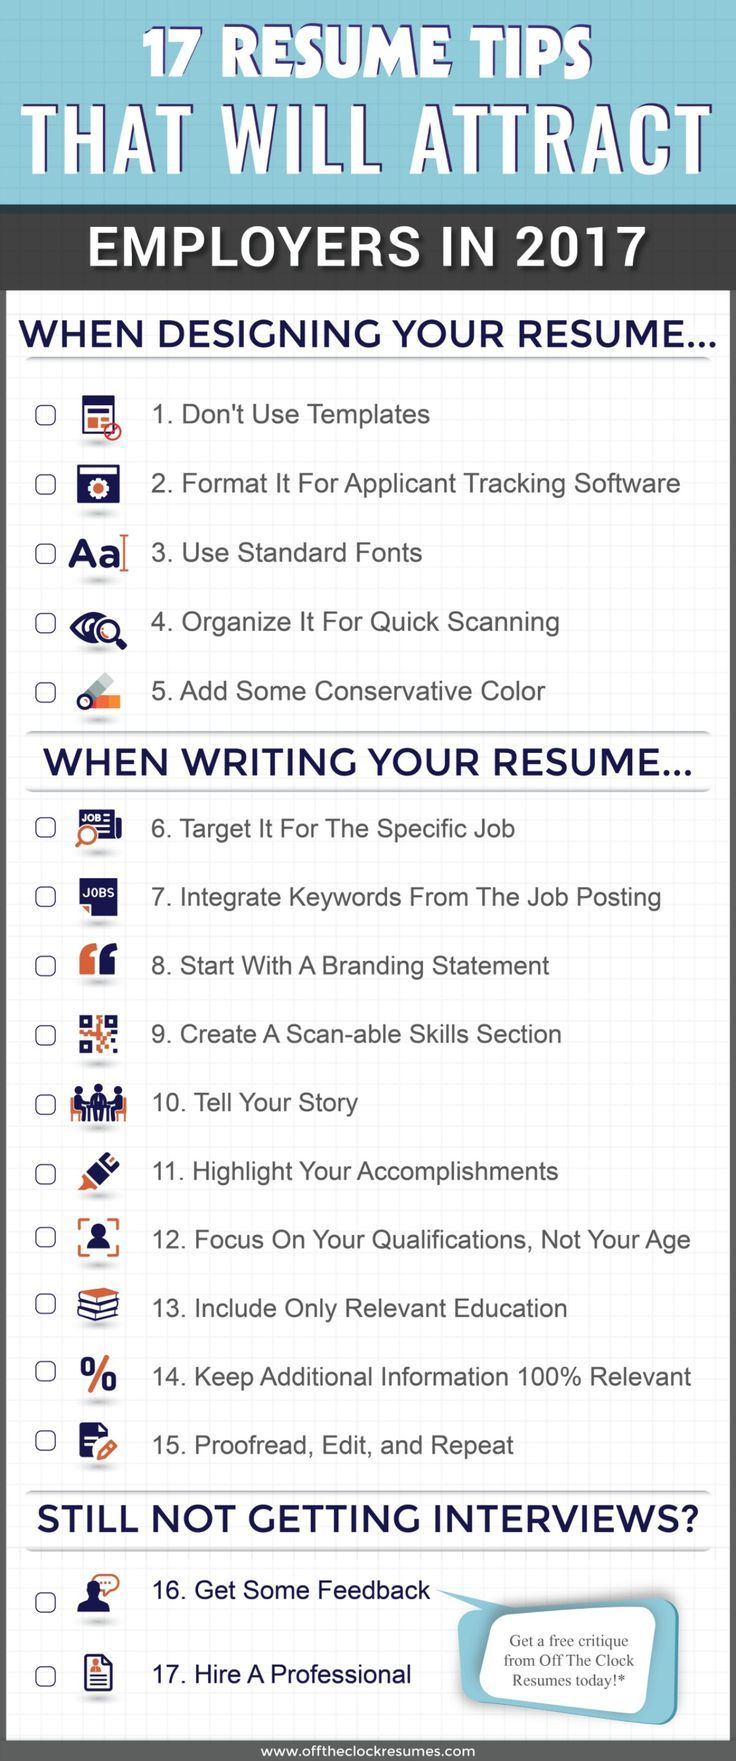 17 resume tips that will attract employers in 2017 infographic off the clock resumes - Free Resumes For Employers